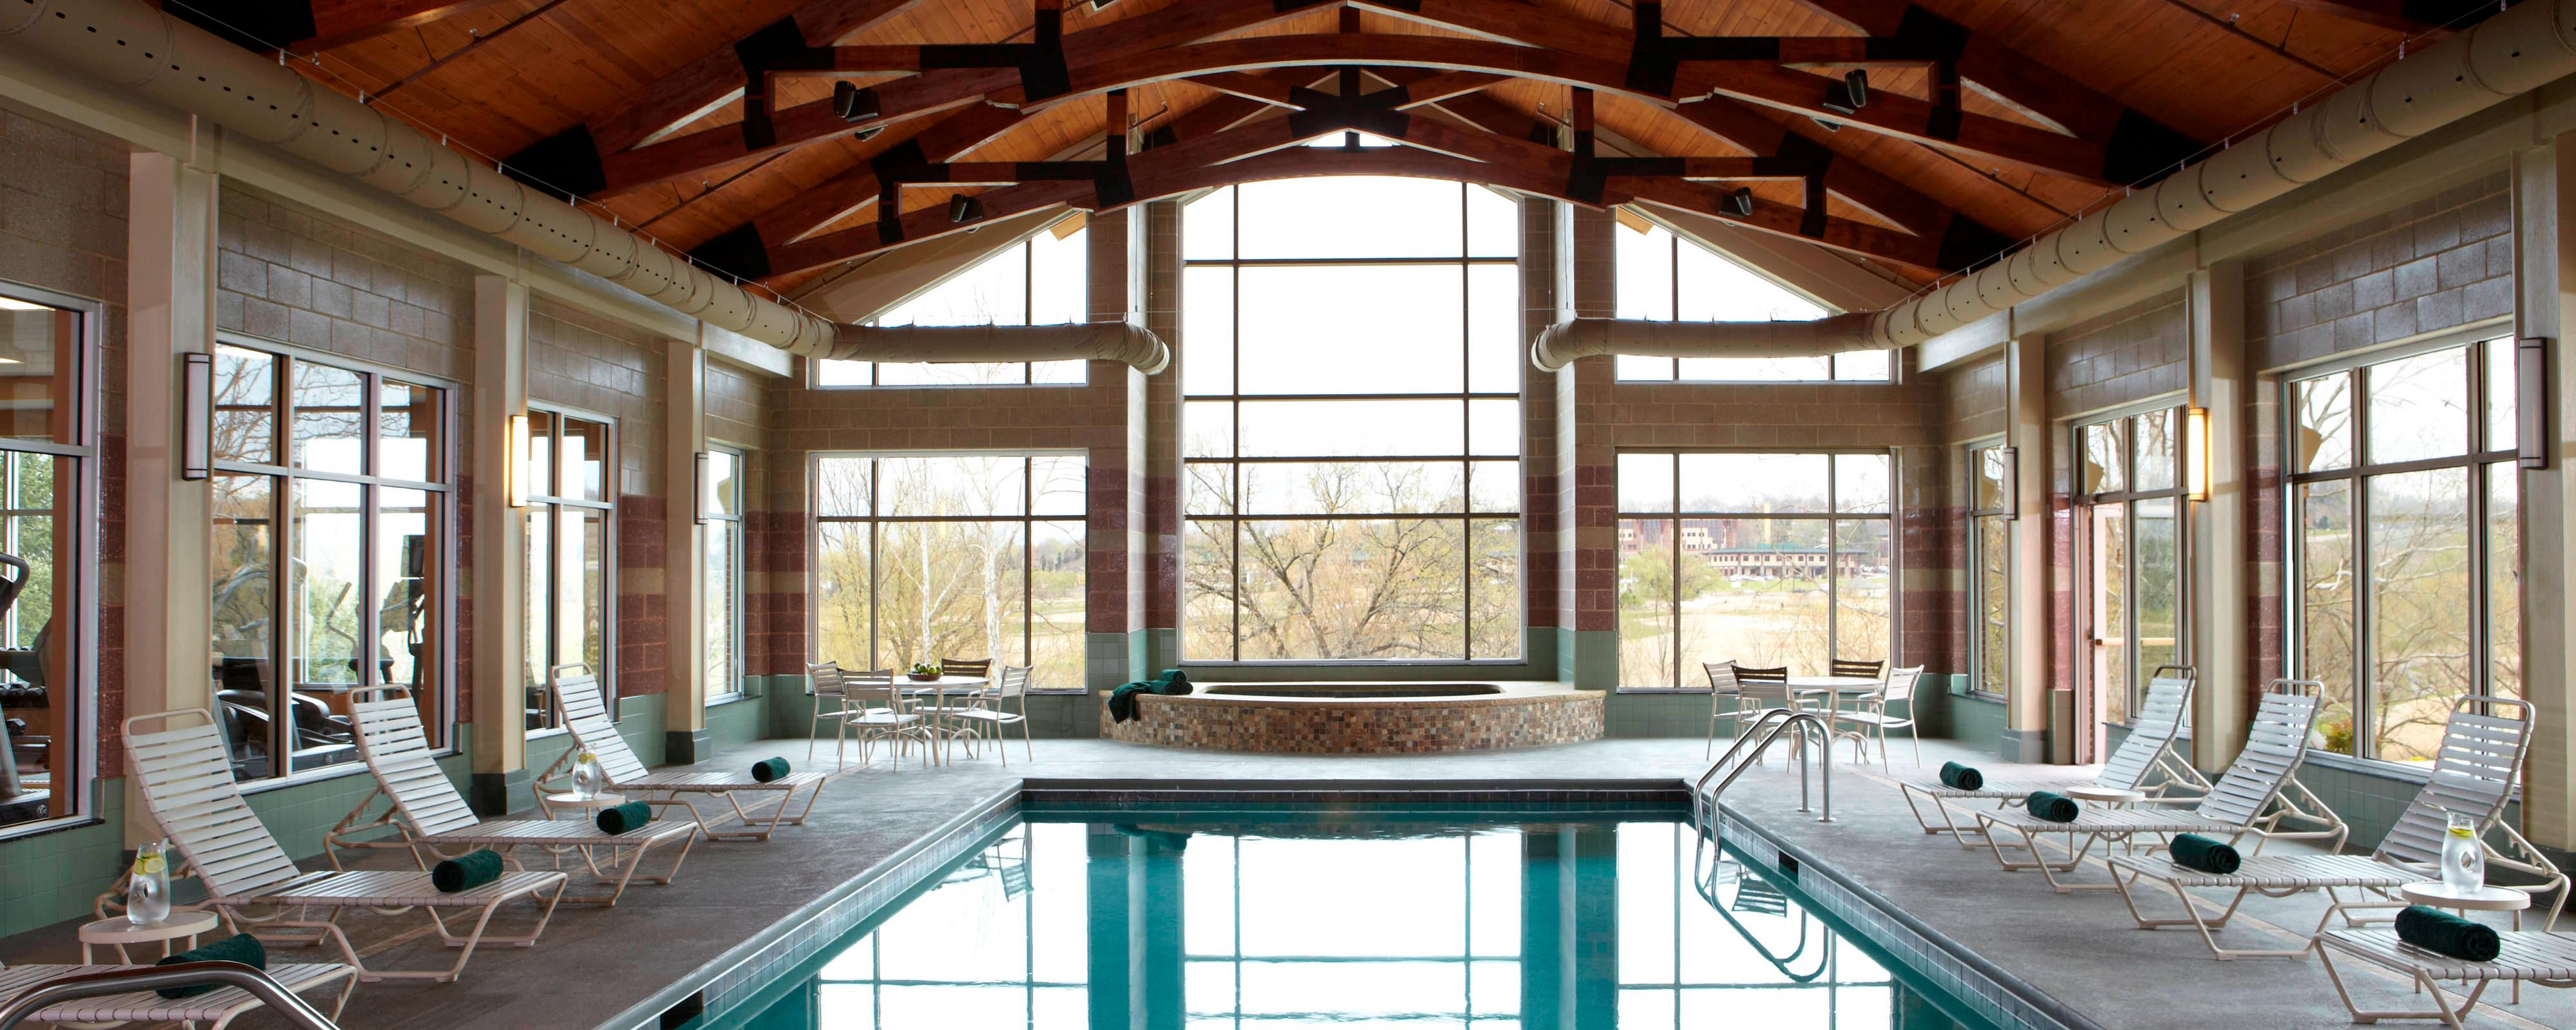 Kingsport Hotel With A Pool | Meadowview Conference Resort Pertaining To Meadowview Convention Center Schedule Events In 2021